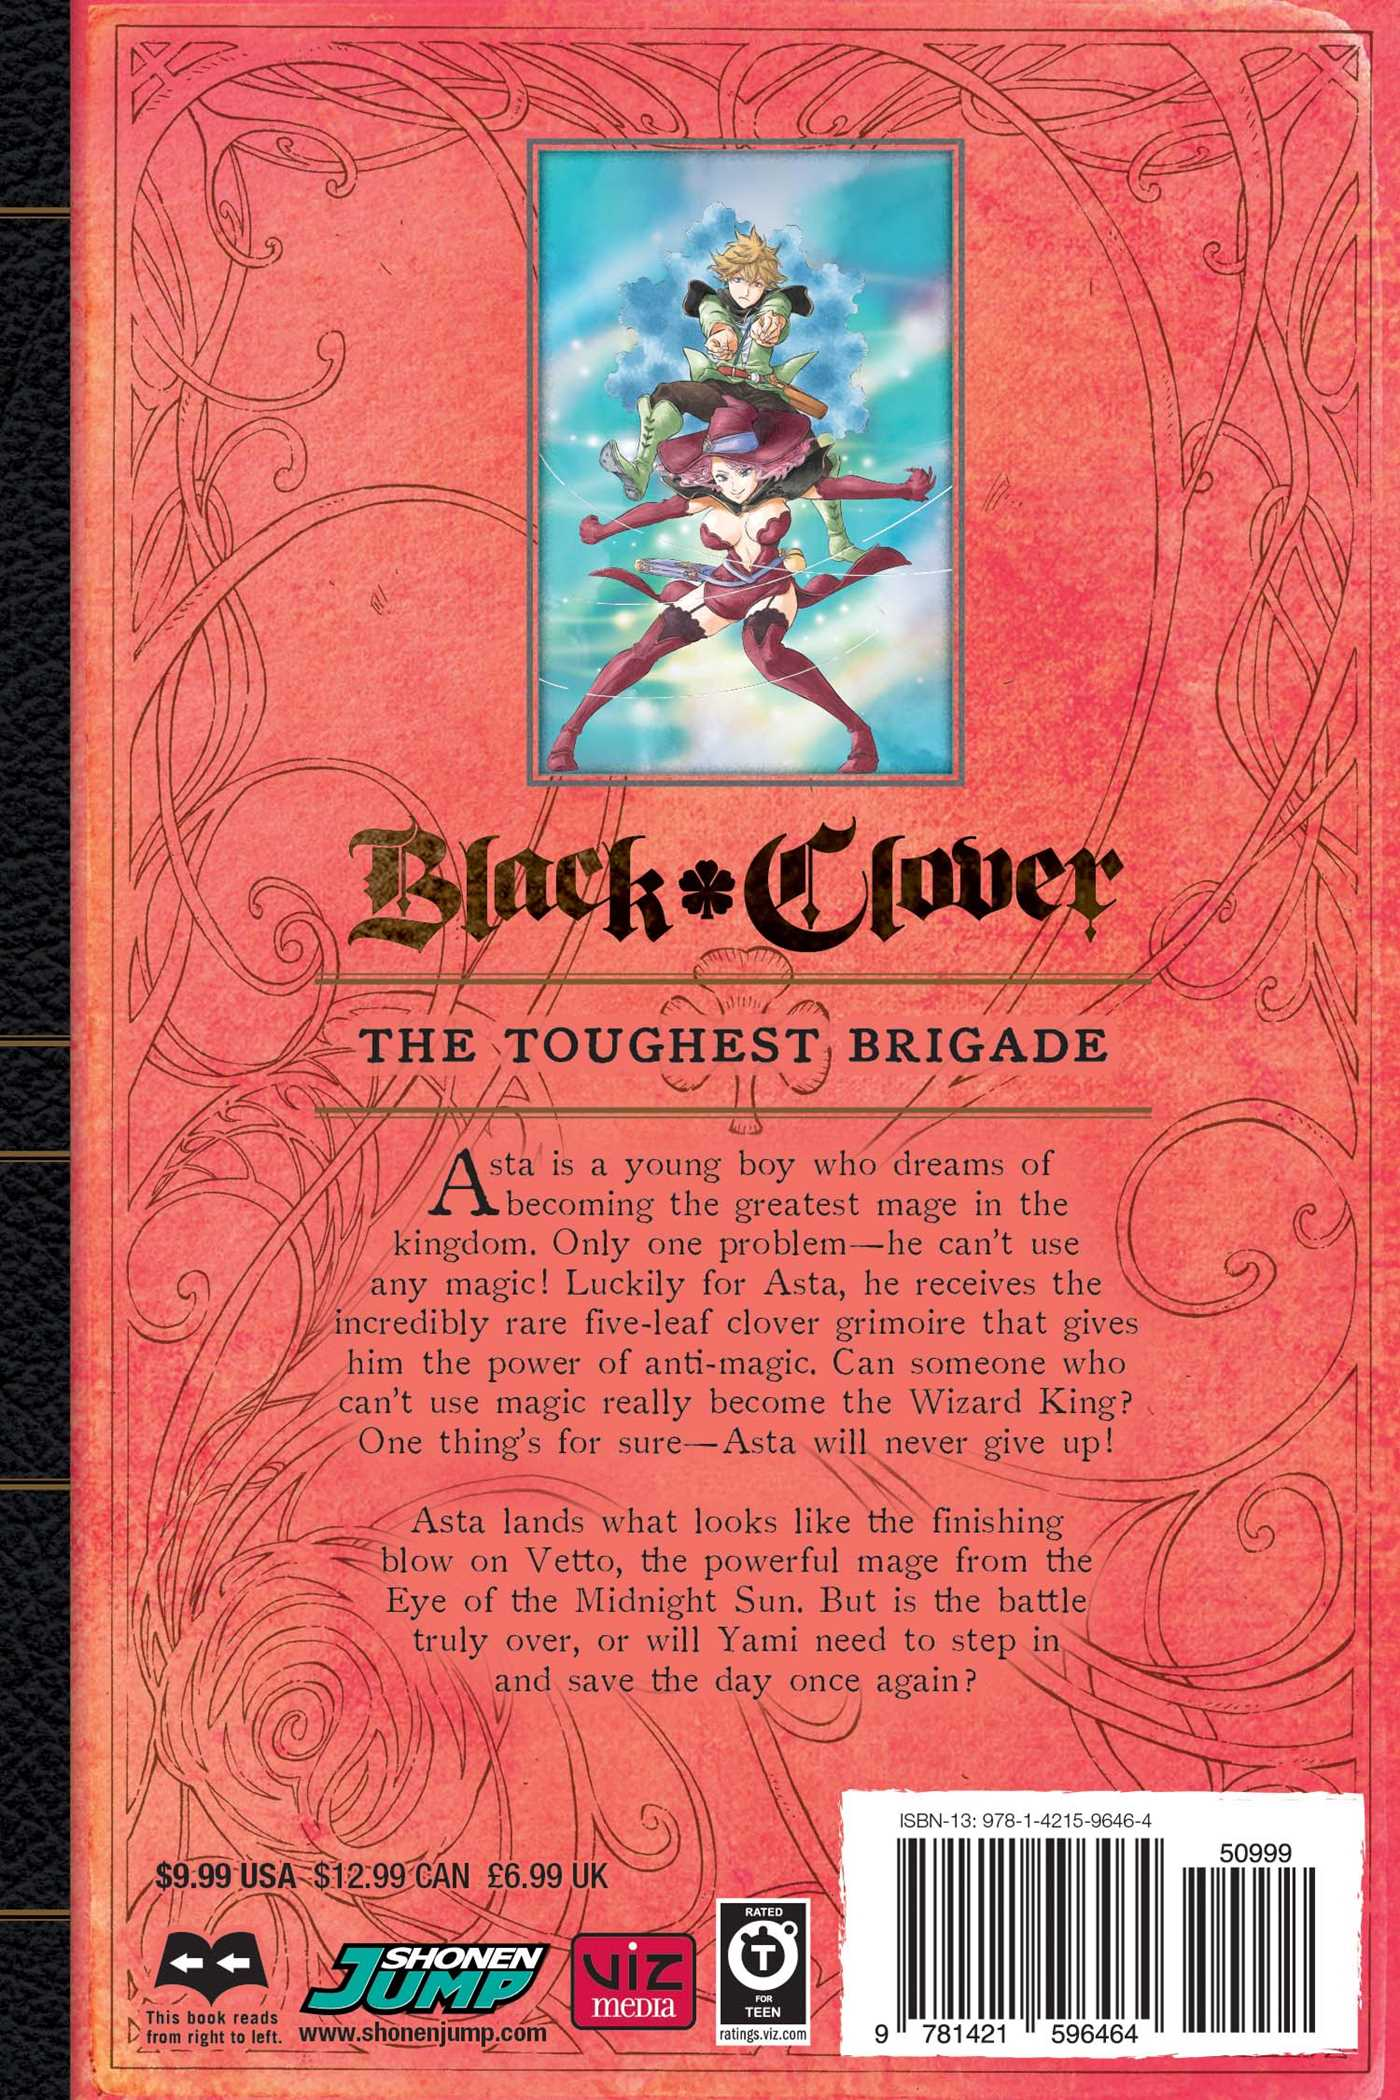 Black Clover Manga Volume 9